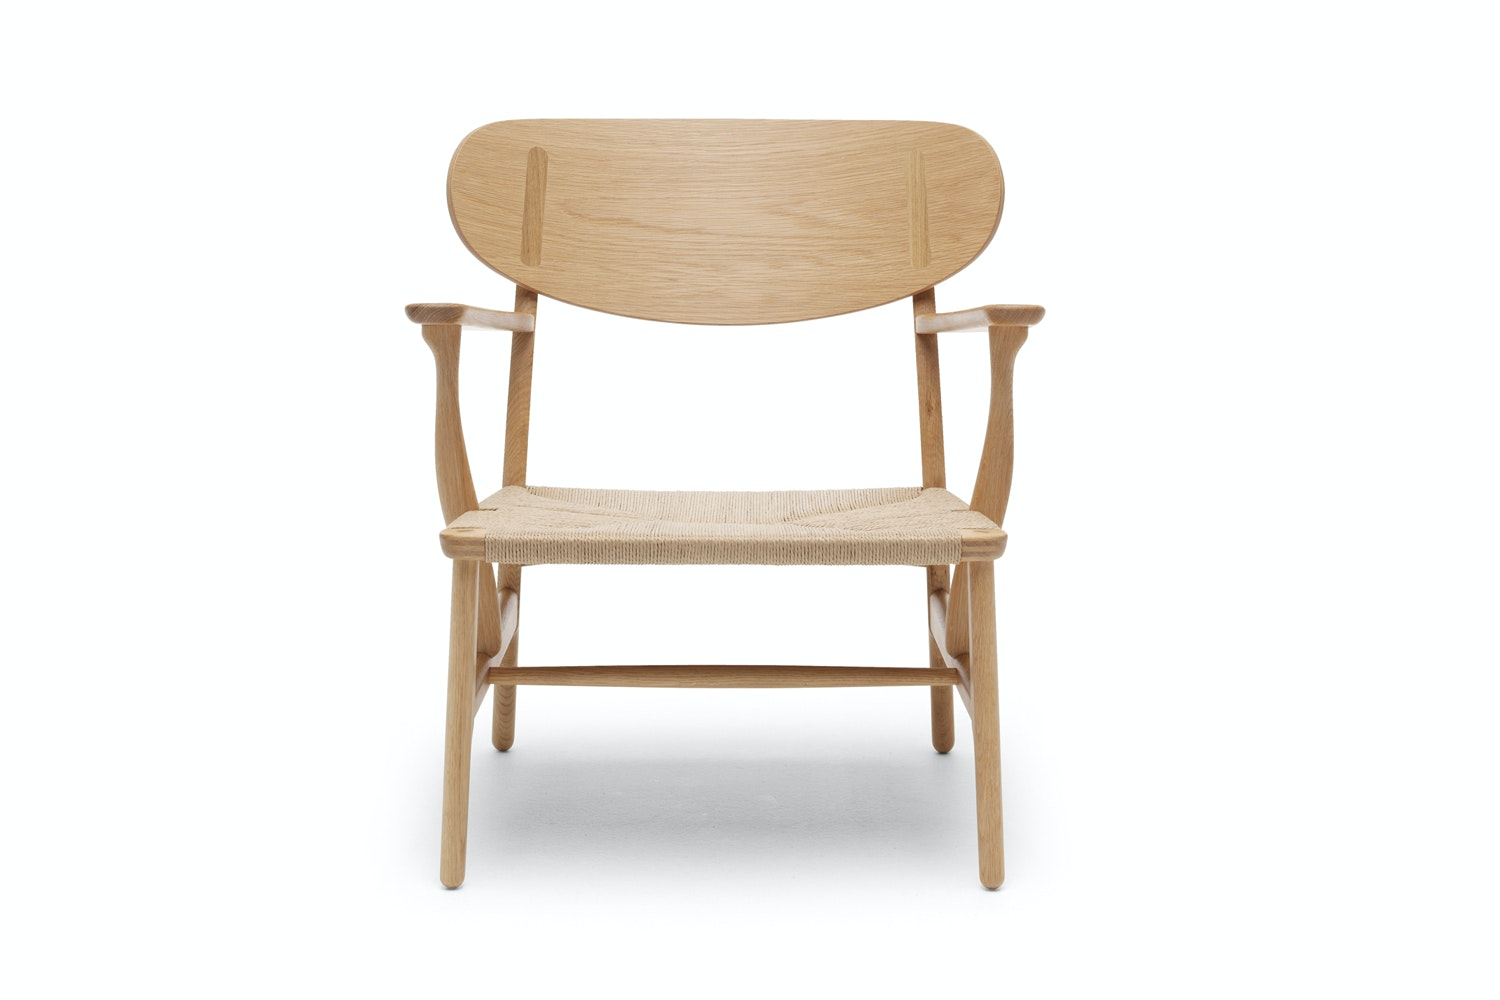 CH22 Armchair by Hans J. Wegner for Carl Hansen & Son